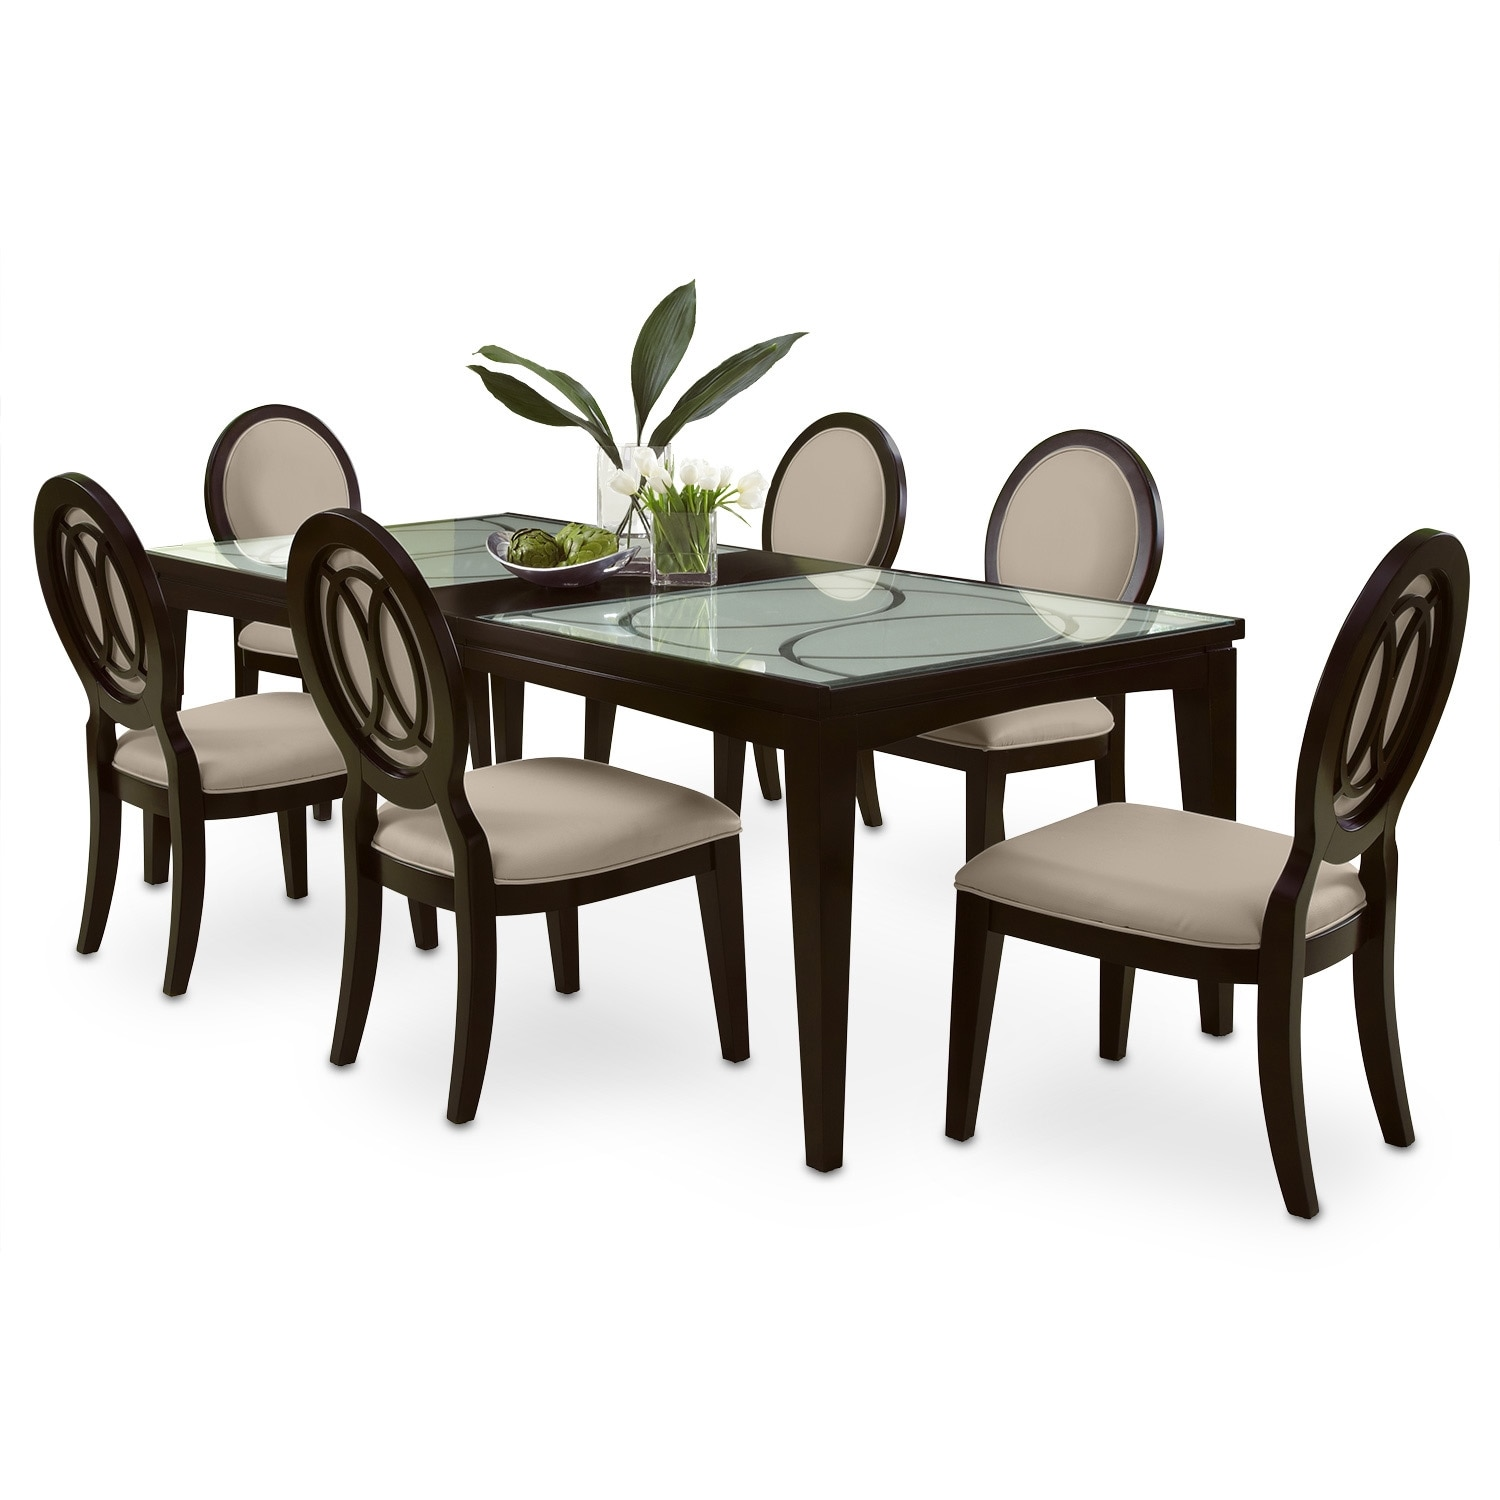 Cosmo table and 6 chairs merlot american signature for Dining room furniture